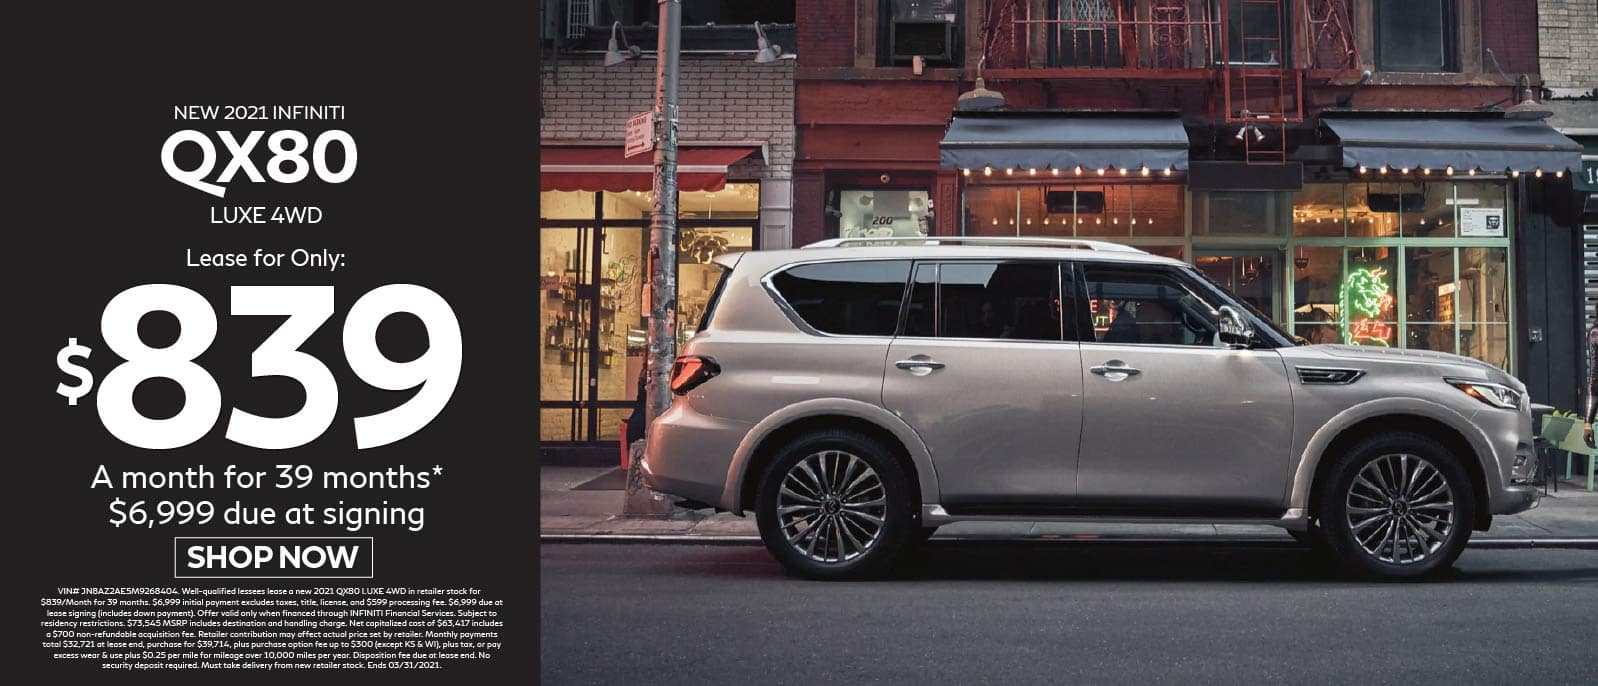 New 2021 QX80 Luxe 4WD Lease for $839 a month for 39 months, $6,999 due at signing